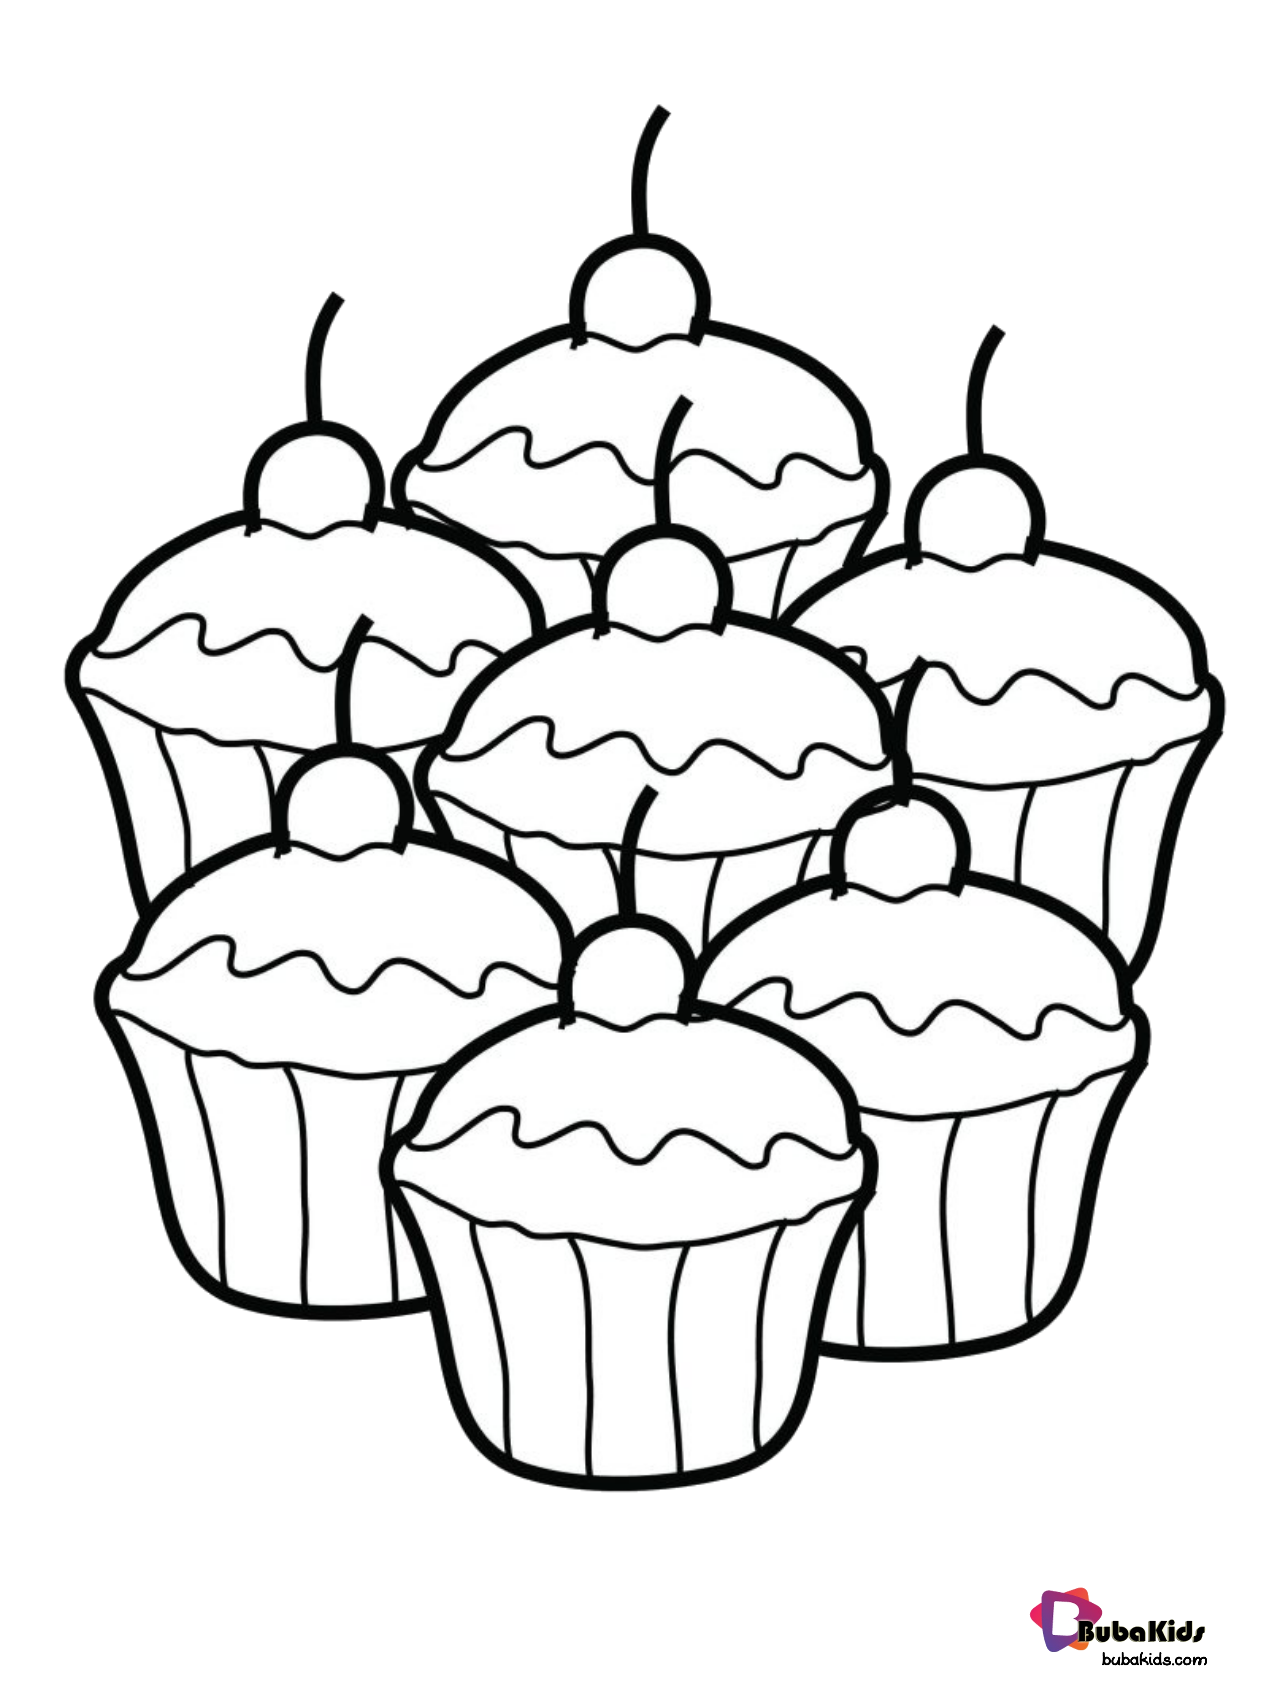 Easy Coloring Food Coloring Page Cupcakes Collection Of Cartoon Coloring Pages For T In 2020 Food Coloring Pages Kids Printable Coloring Pages Cupcake Coloring Pages